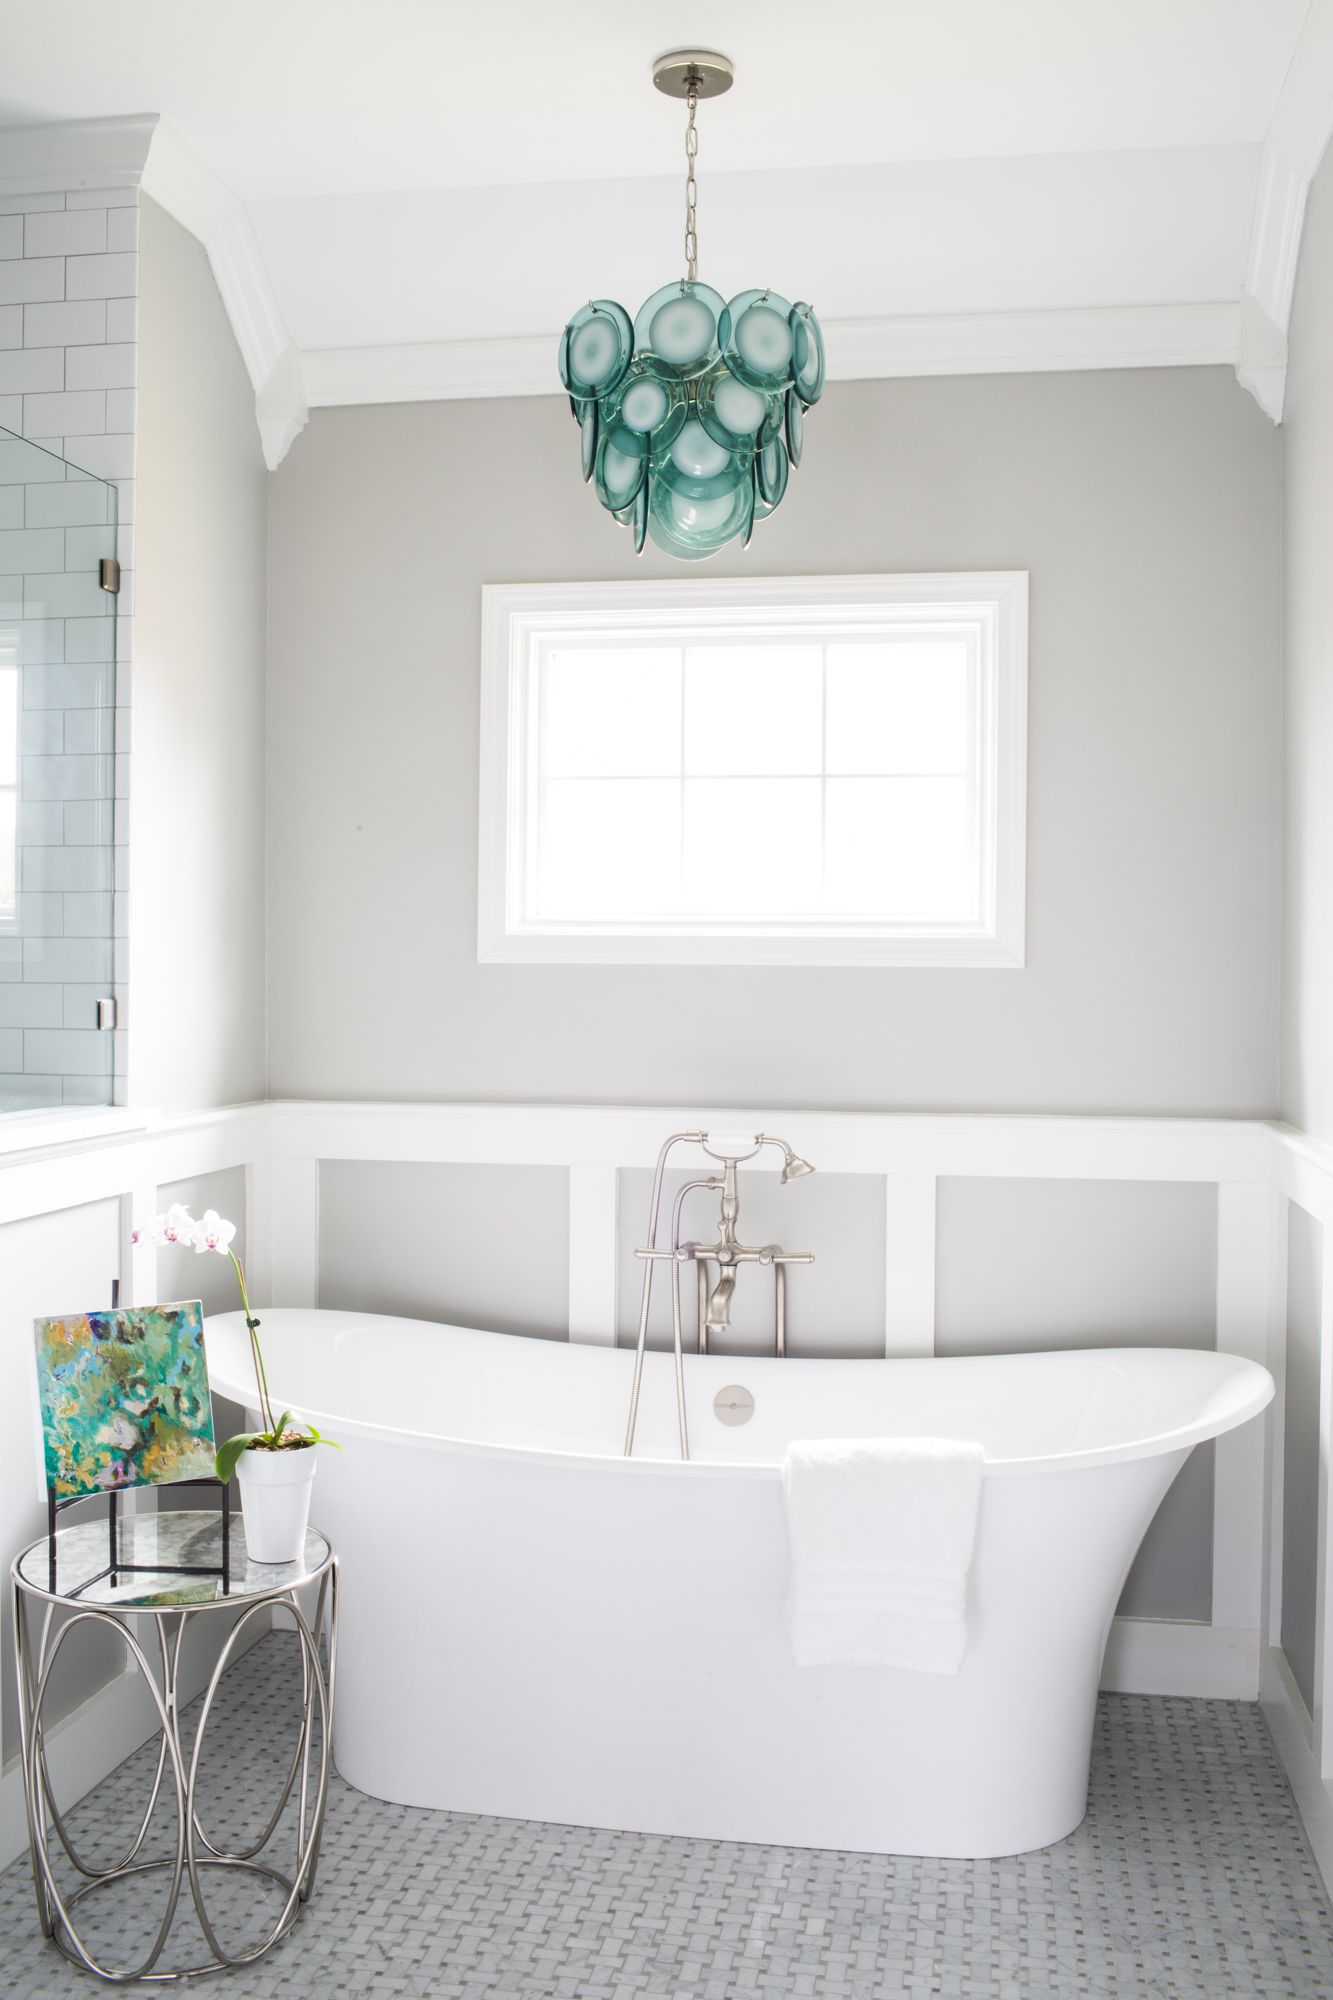 Freestanding Tub with Blue Chandelier | Grey bathrooms ...